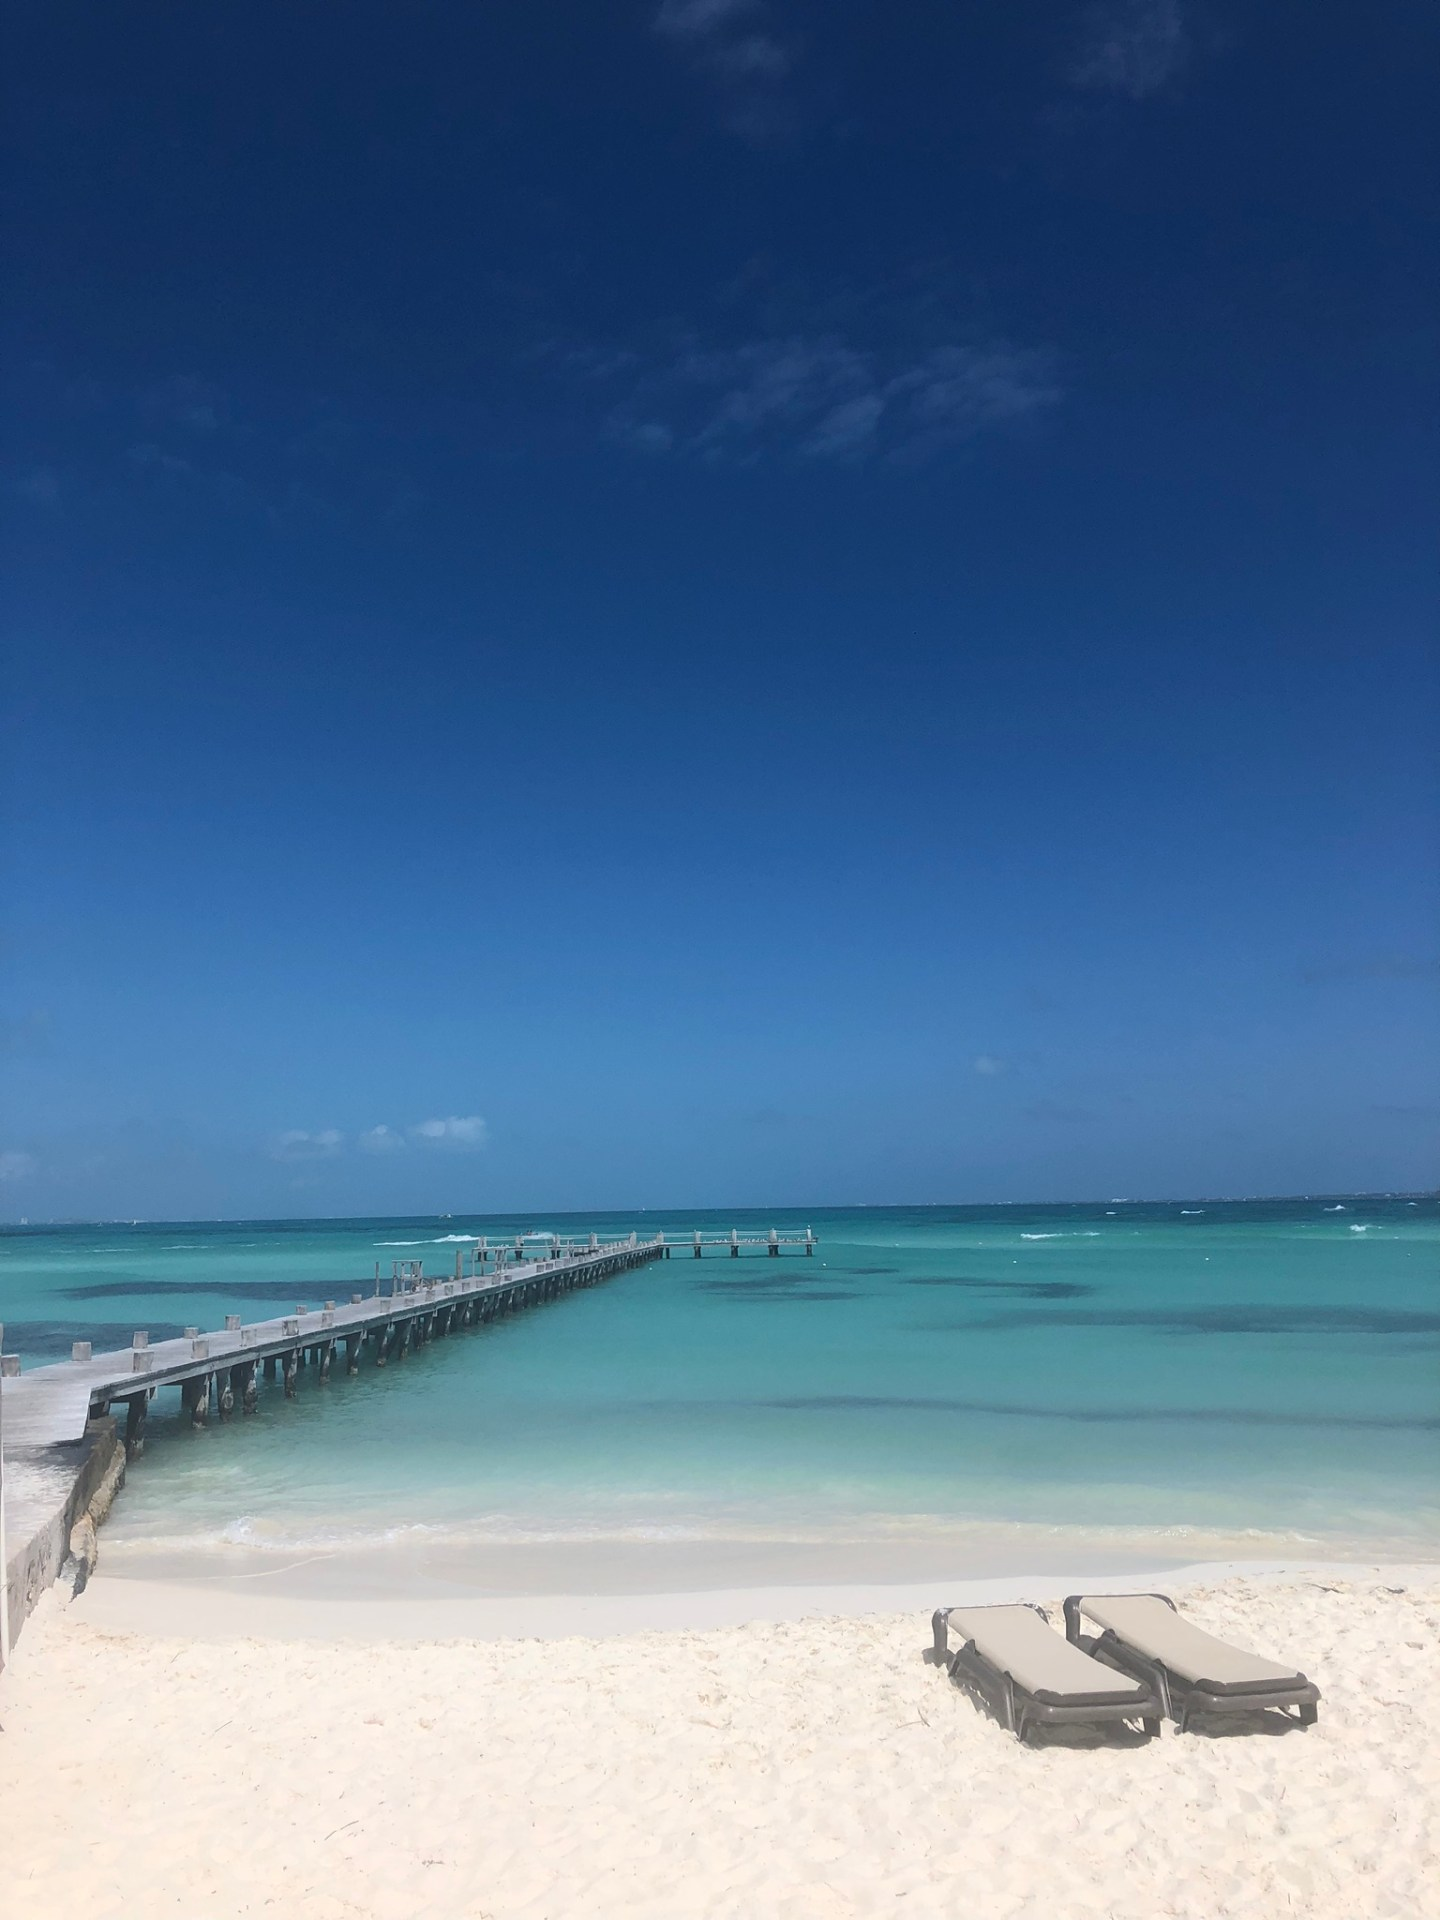 Spring Break in Cancún, Mexico